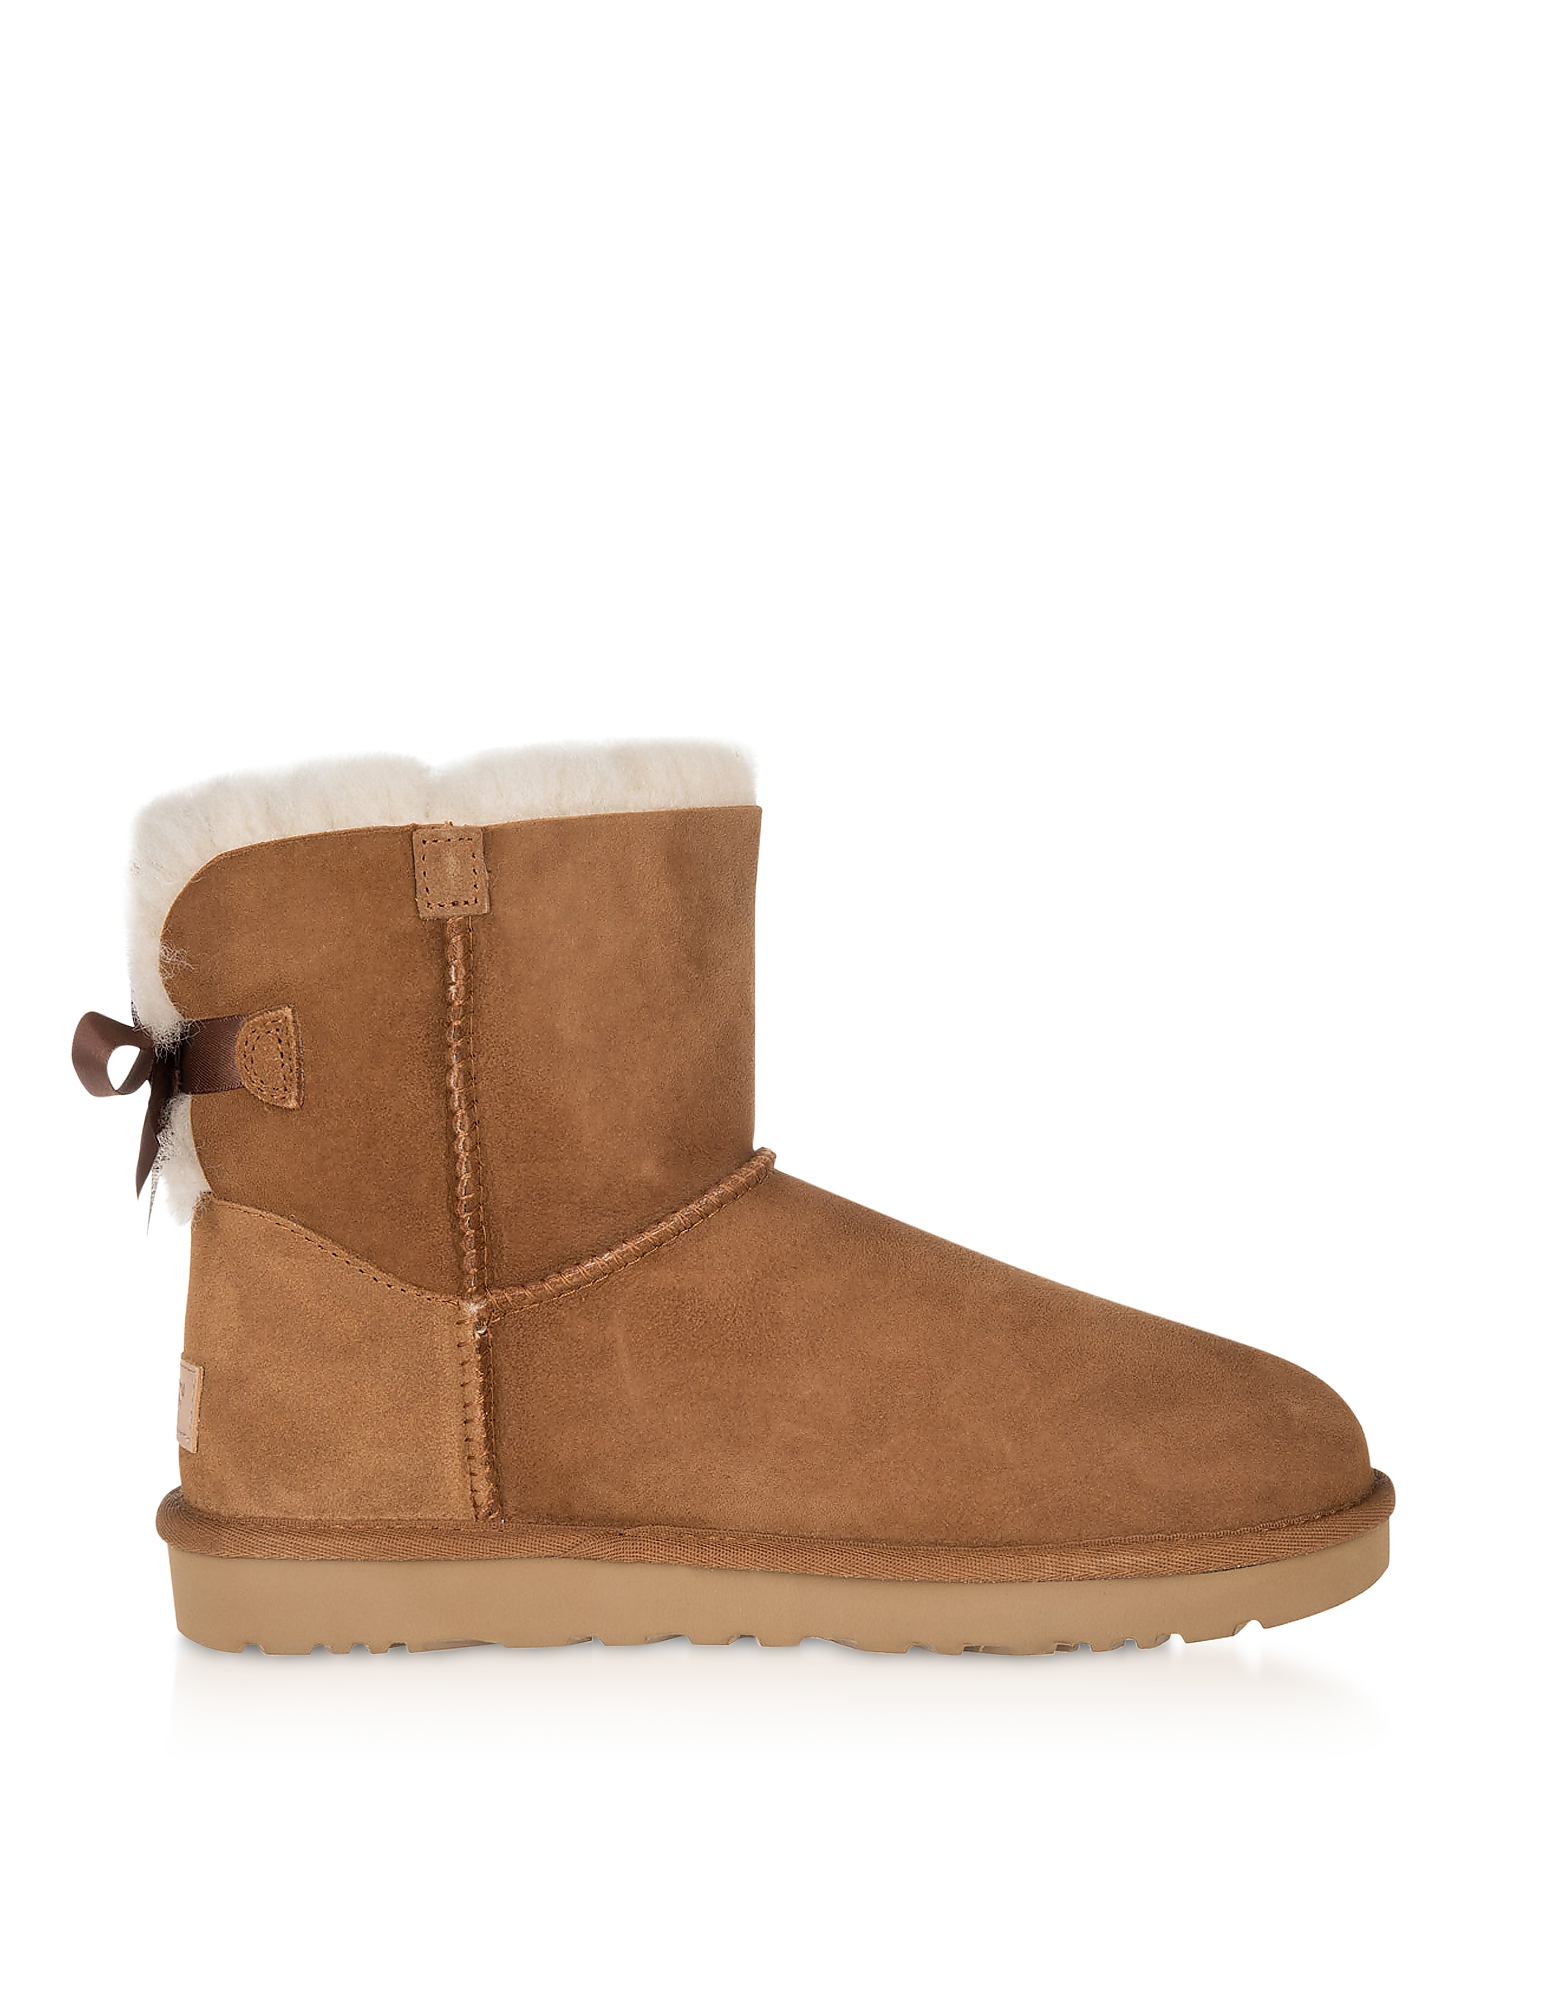 UGG Designer Shoes, Chestnut Mini Bailey Bow Boots